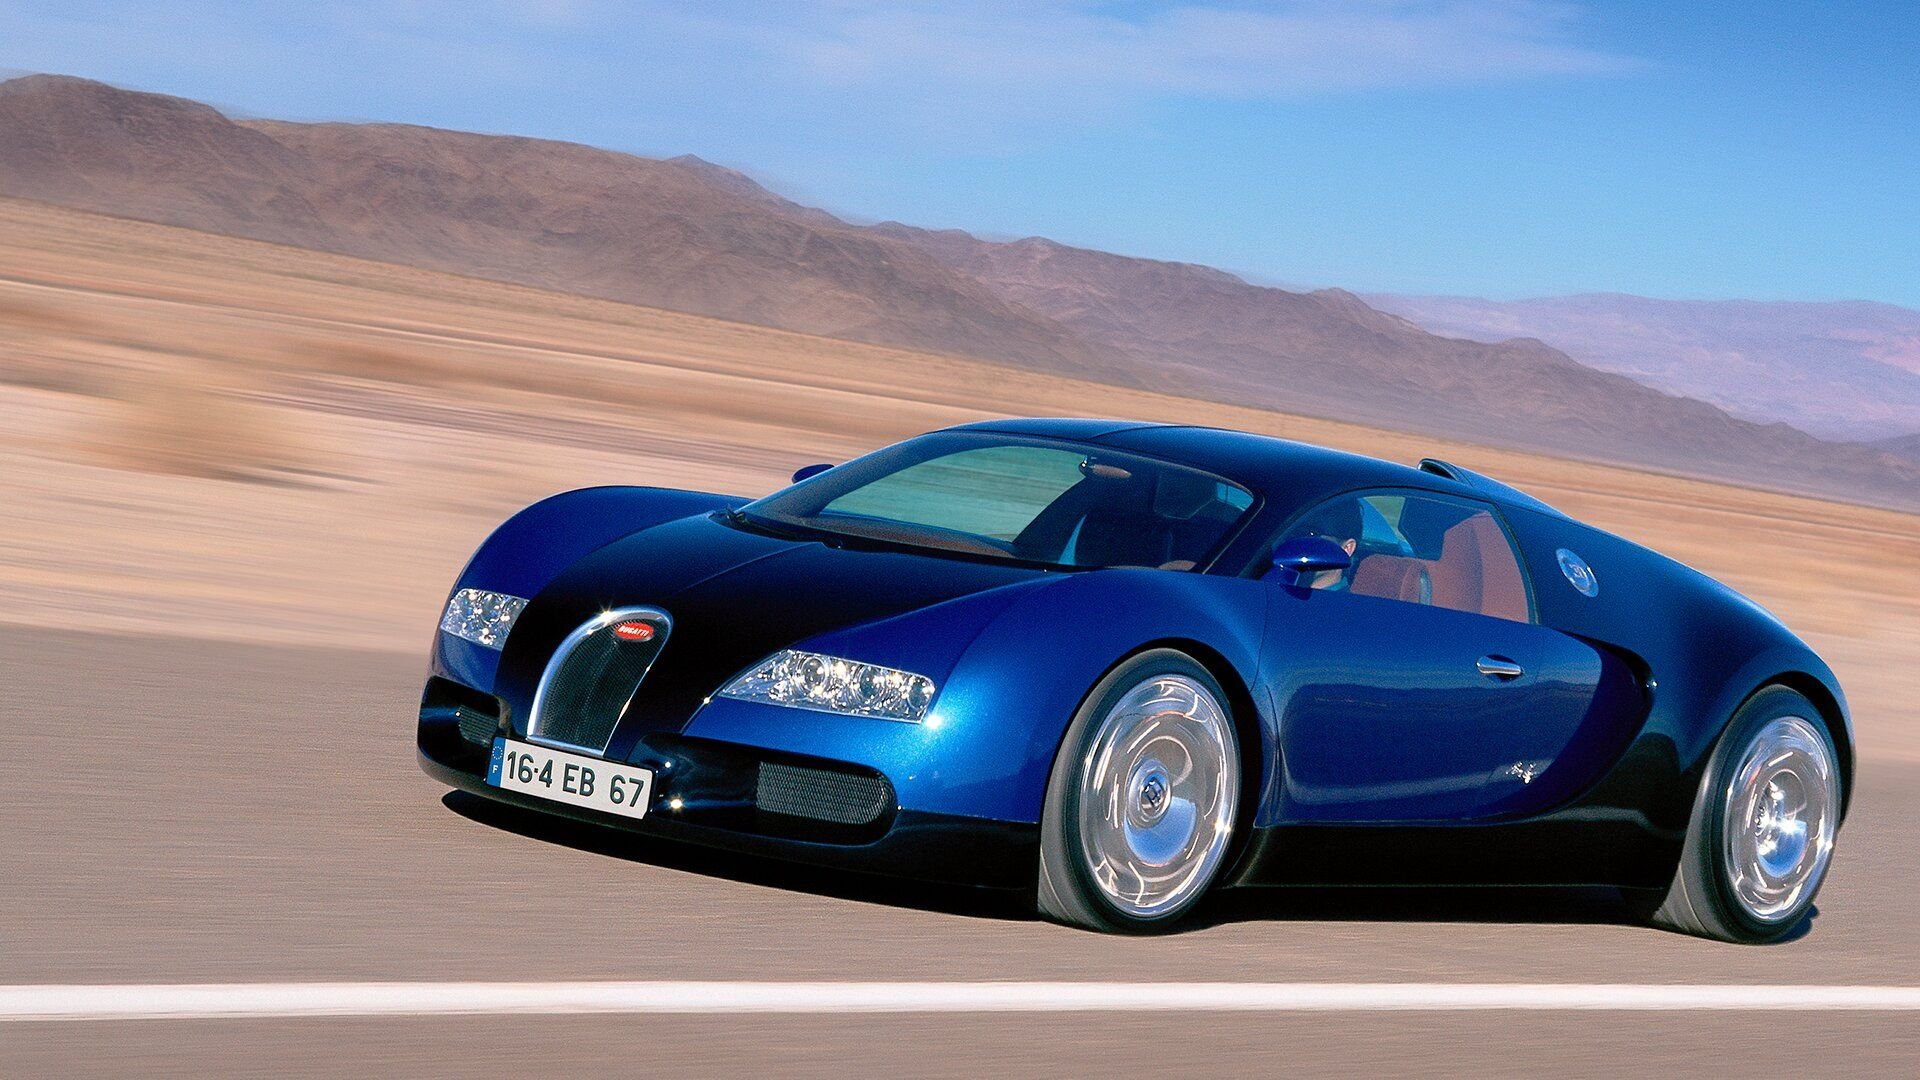 Here's What We Love About The 2005 Bugatti Veyron